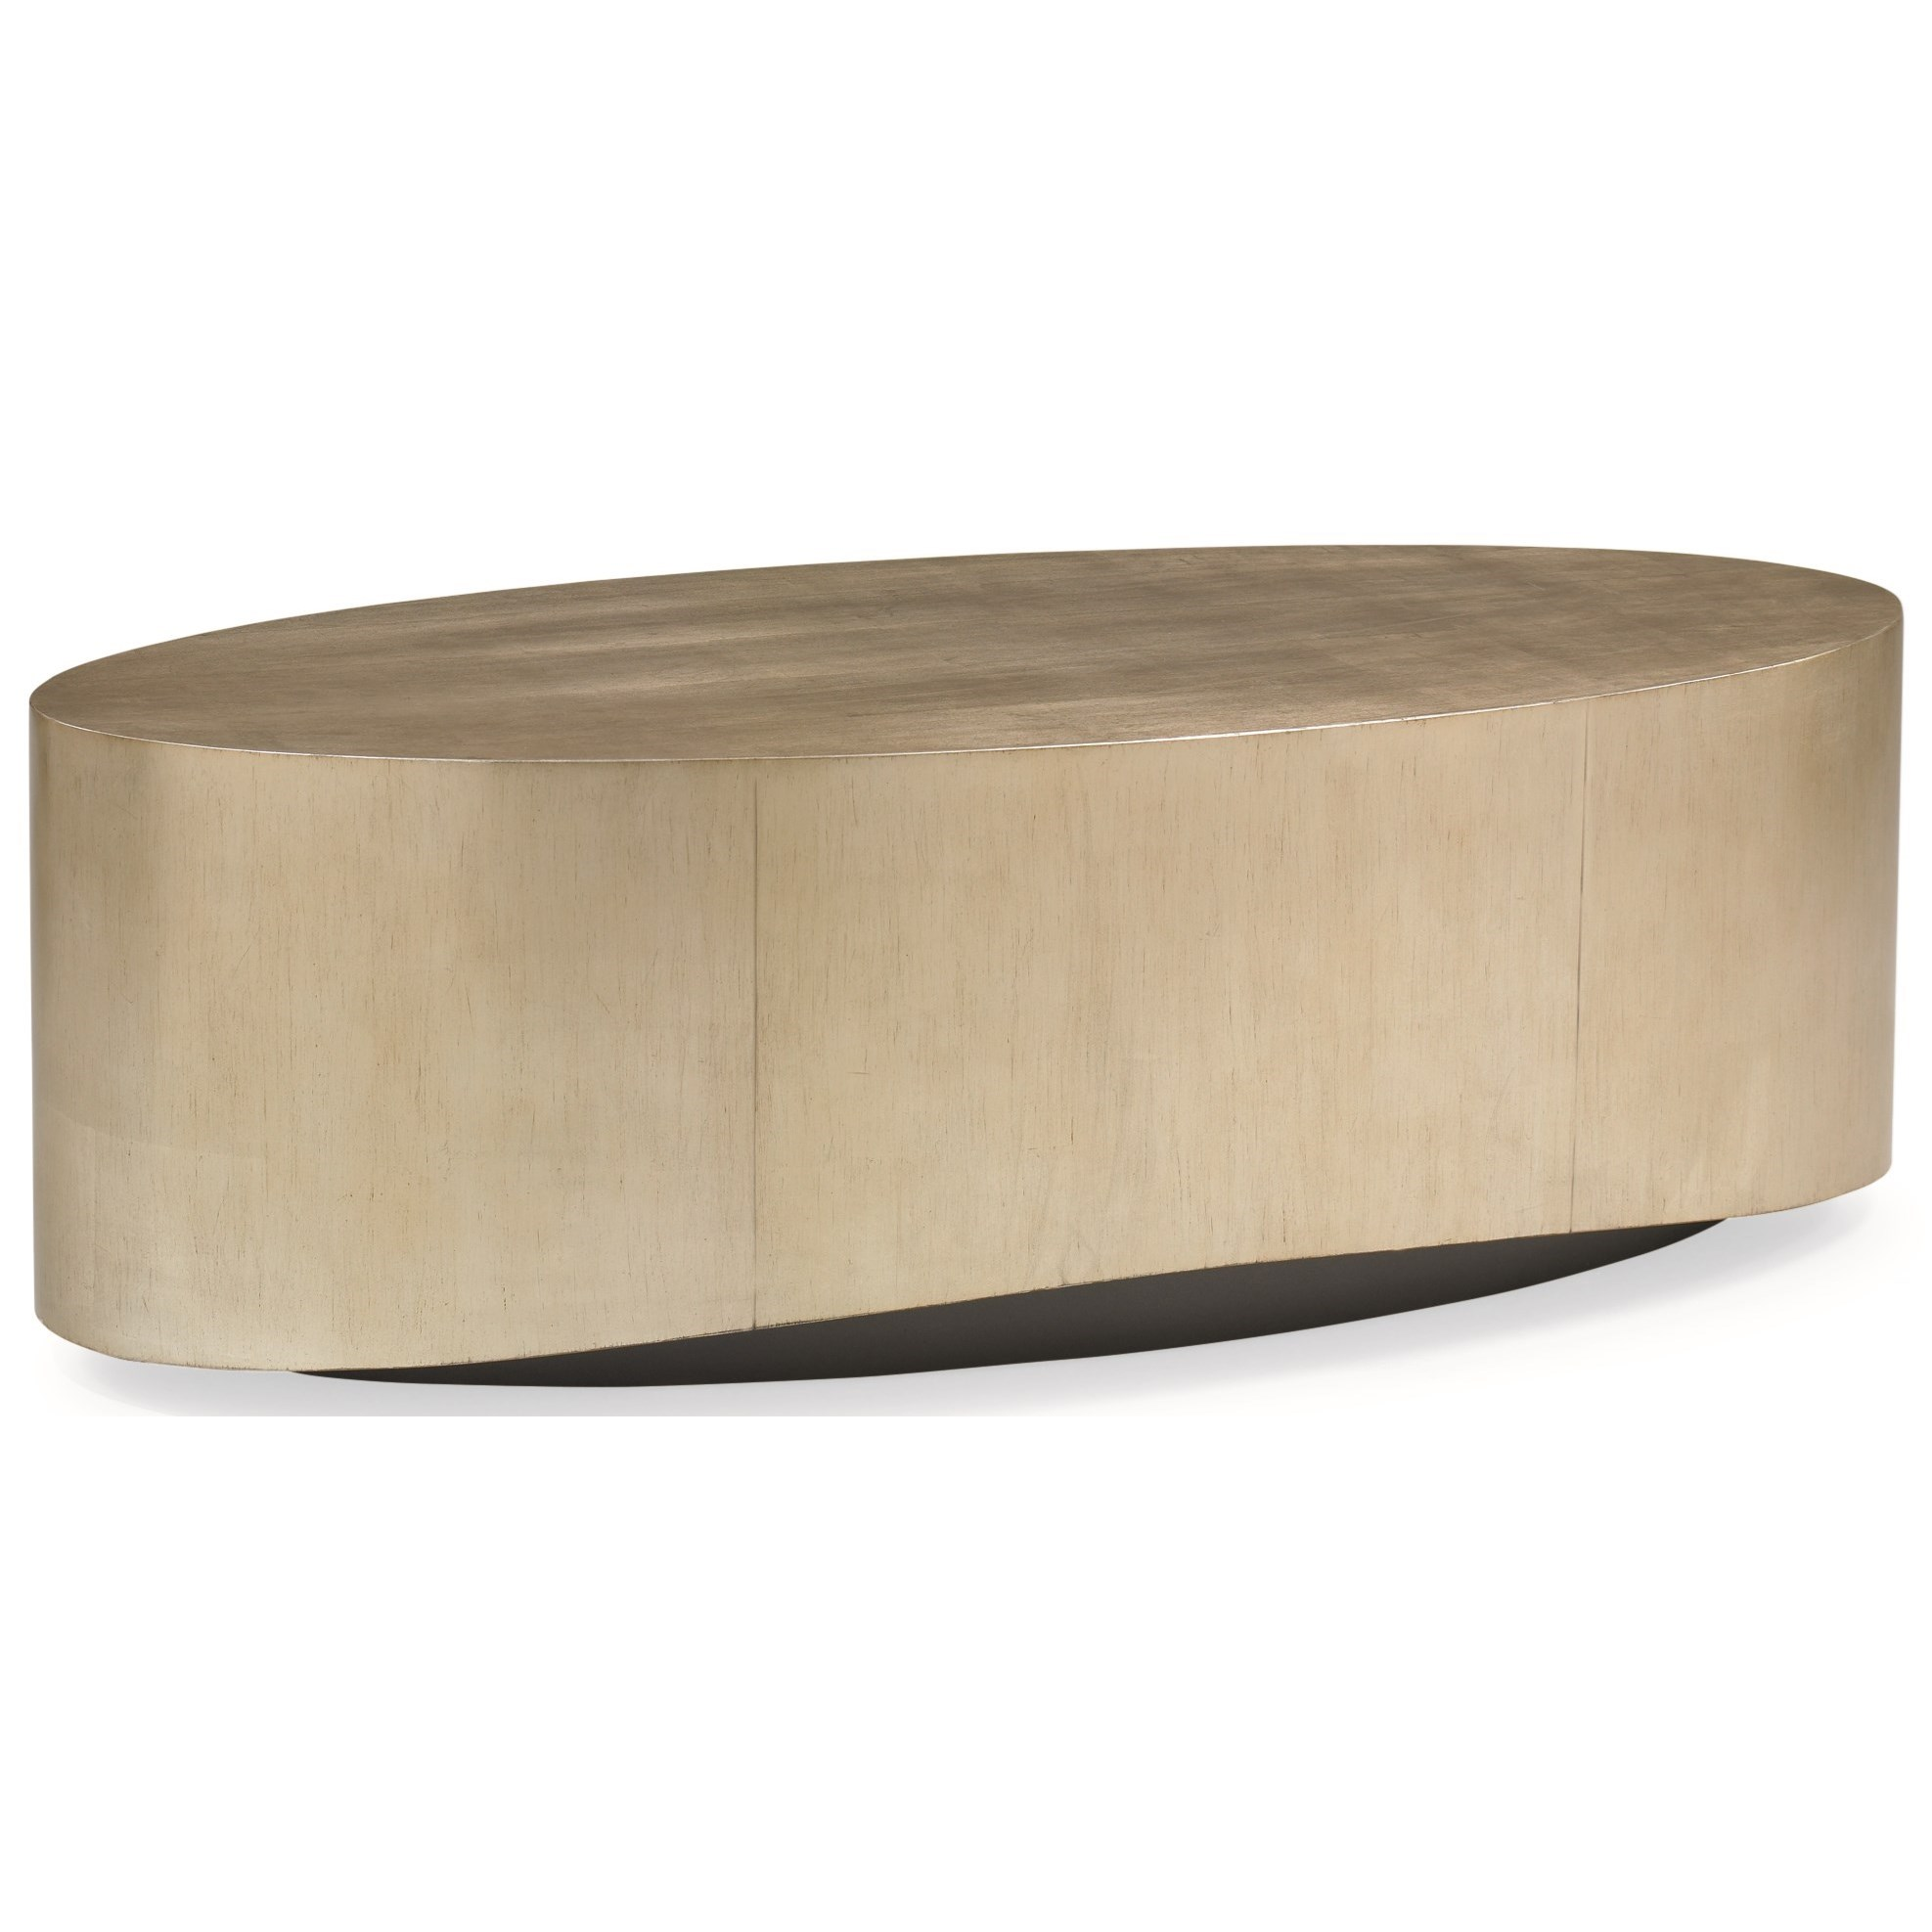 New Traditional Come Oval Here Cocktail Table by Caracole at Baer's Furniture